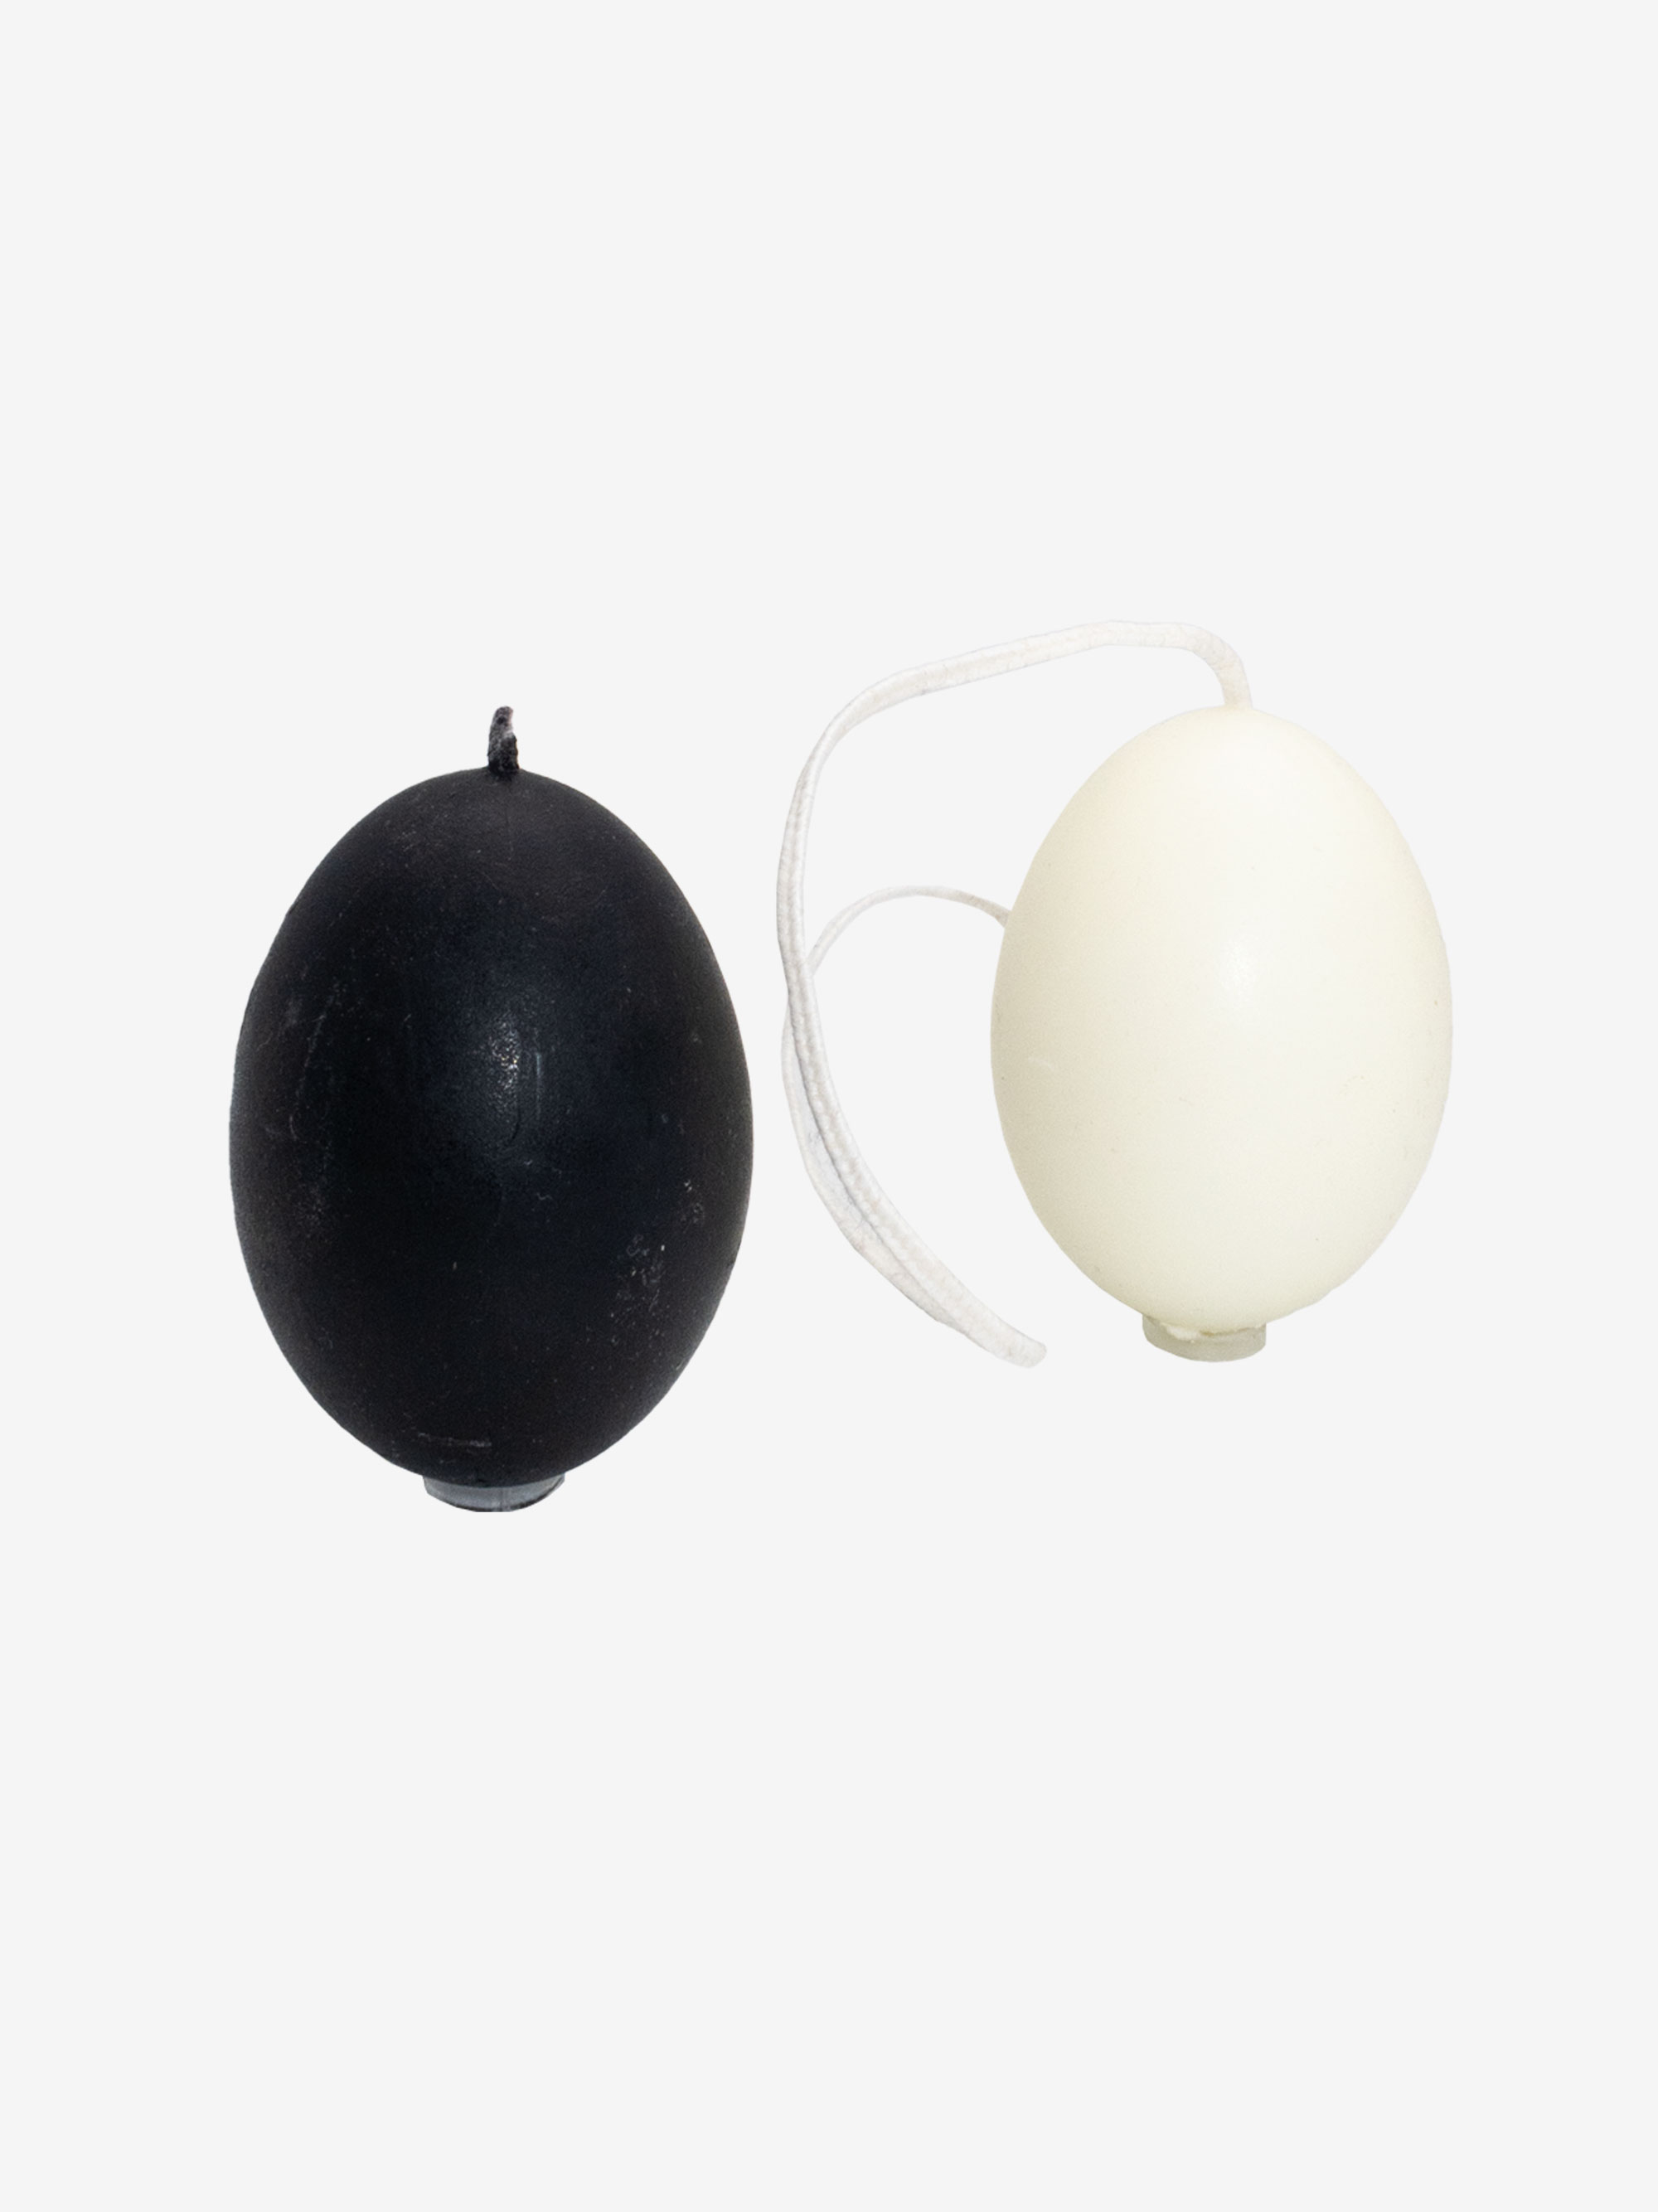 Goose Egg Candle White